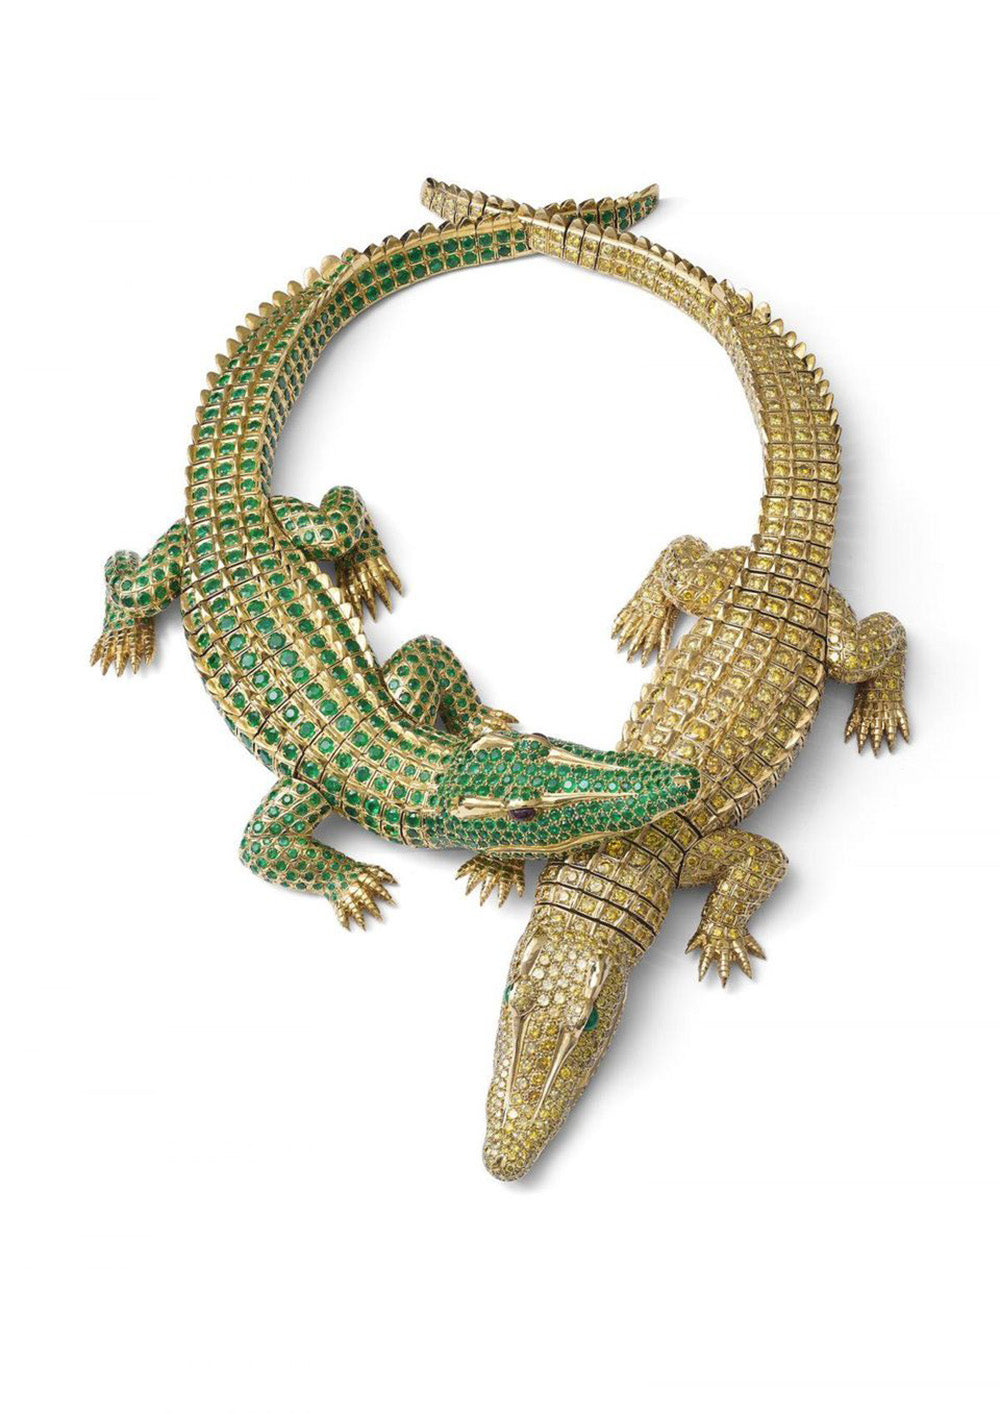 Cartier crocodile necklace commissioned by María Félix